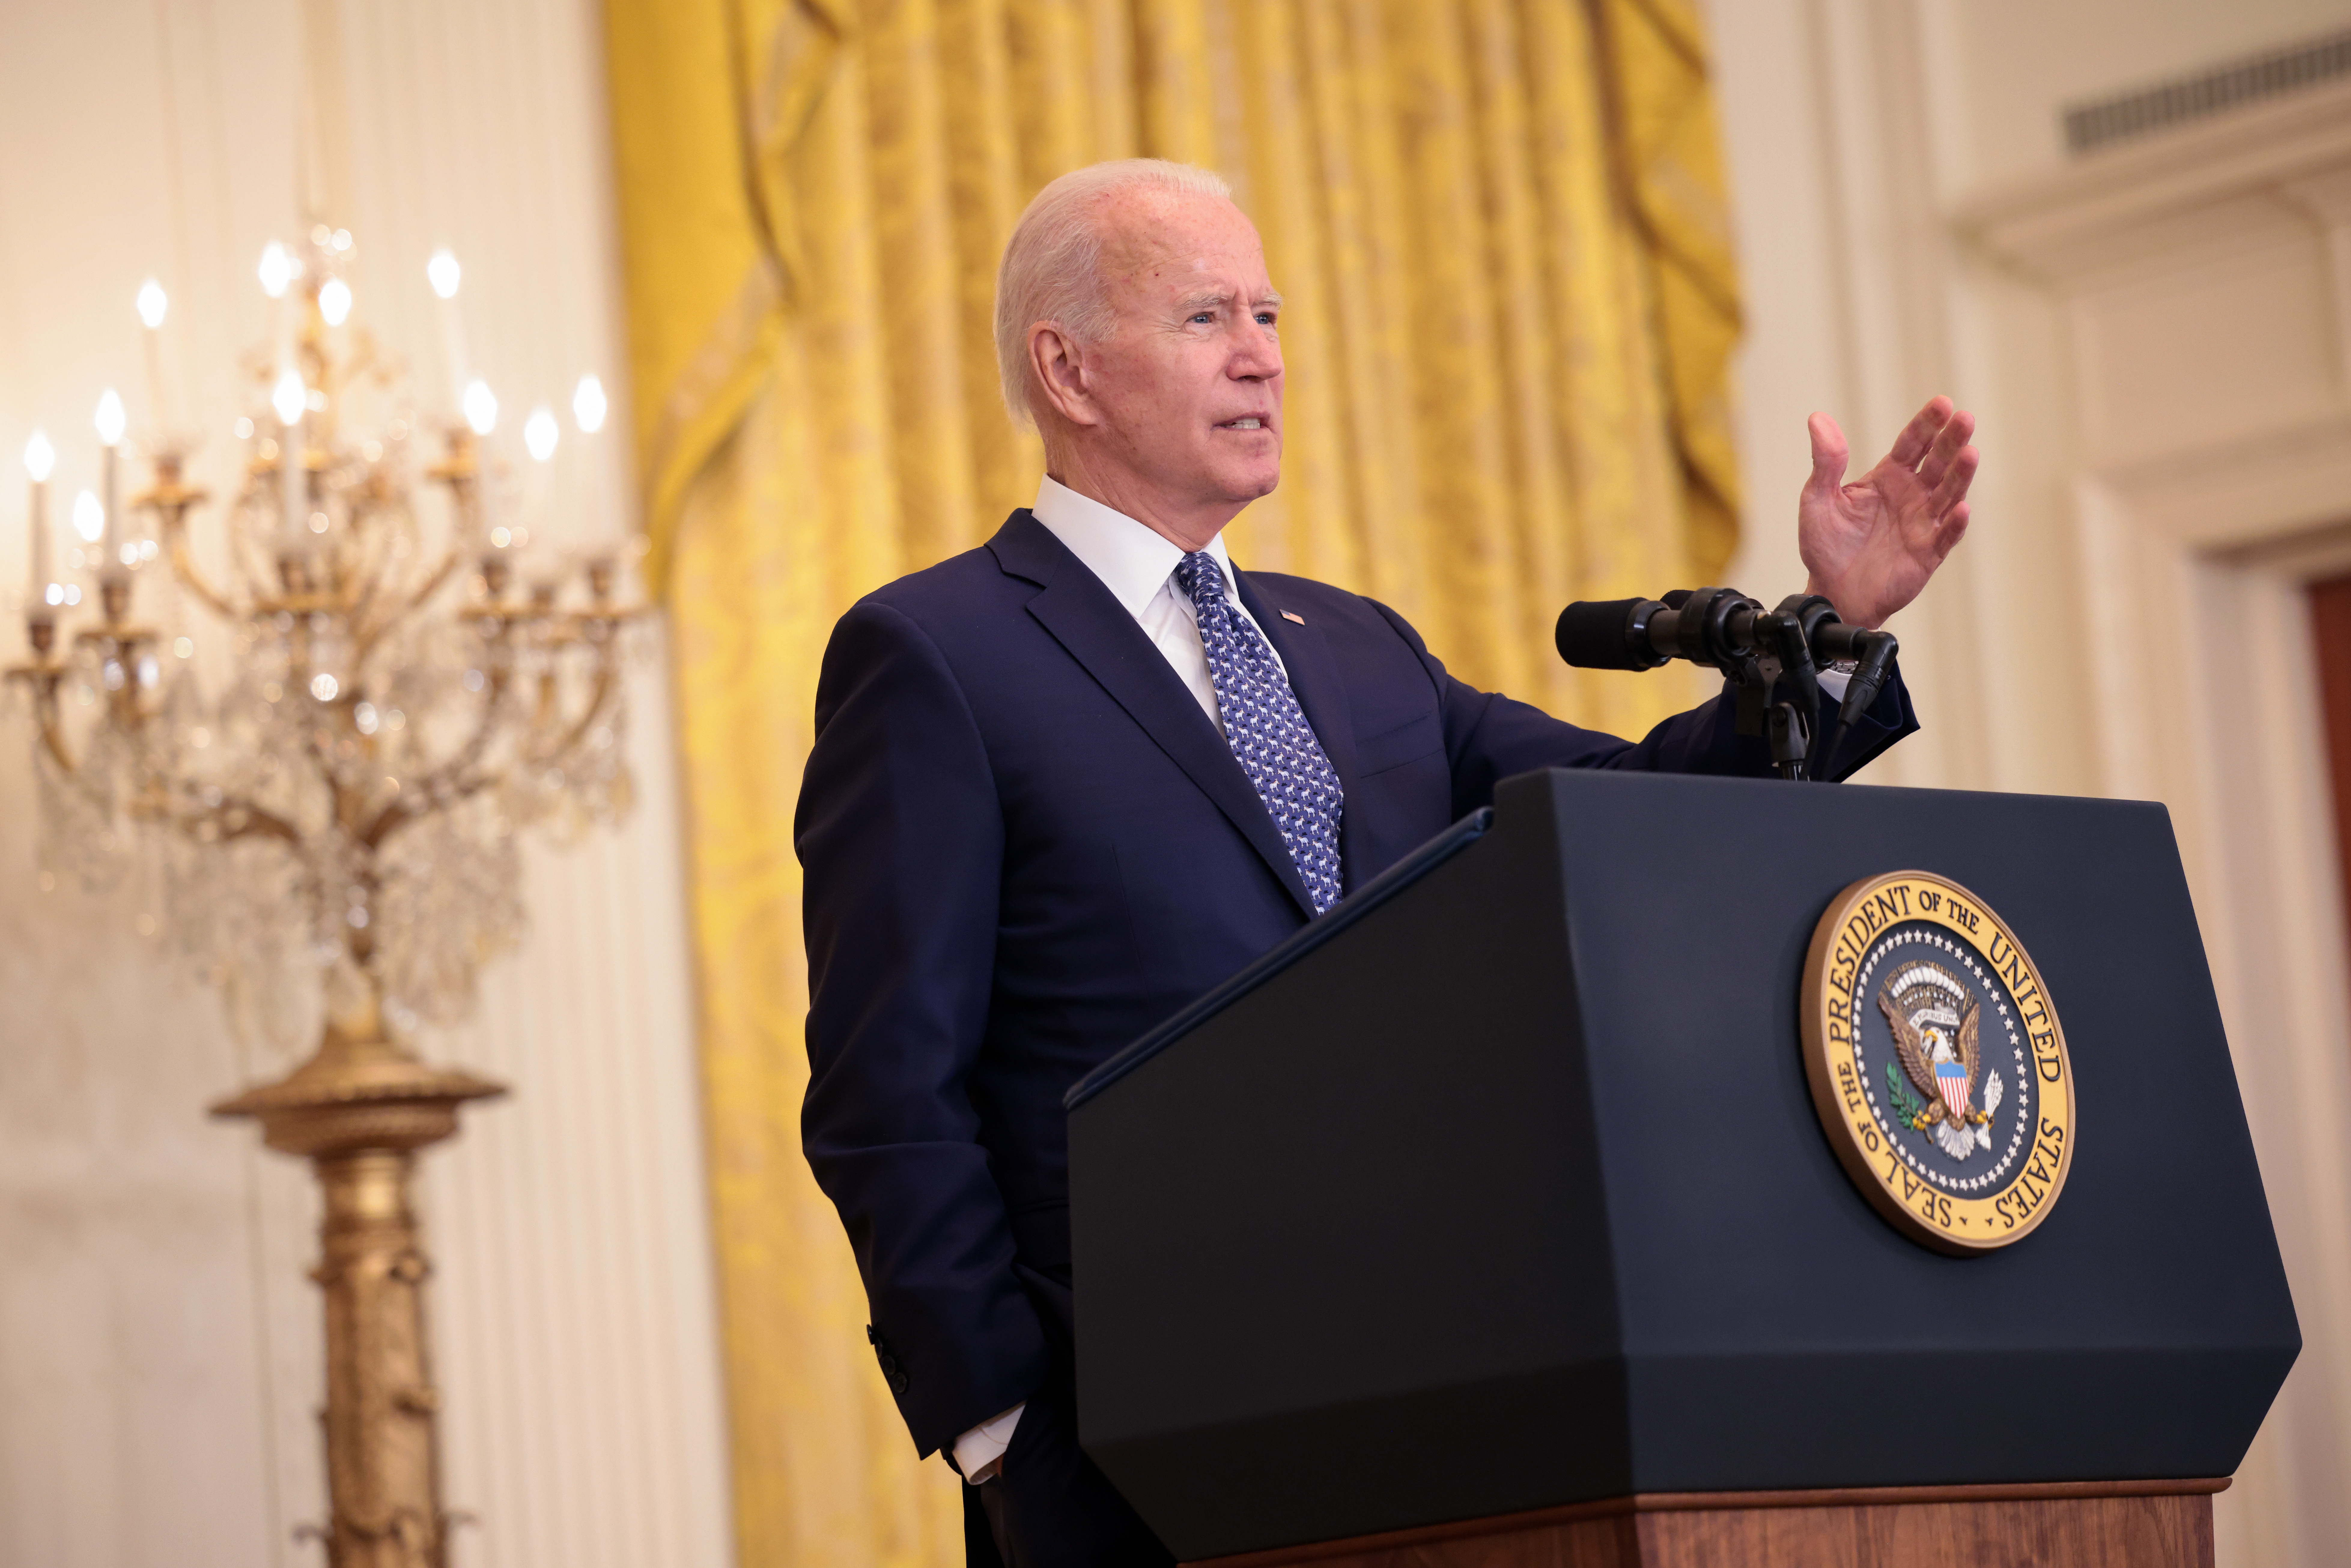 President Biden speaks at a podium marked with the presidential seal, with an ornate candelabra behind him.